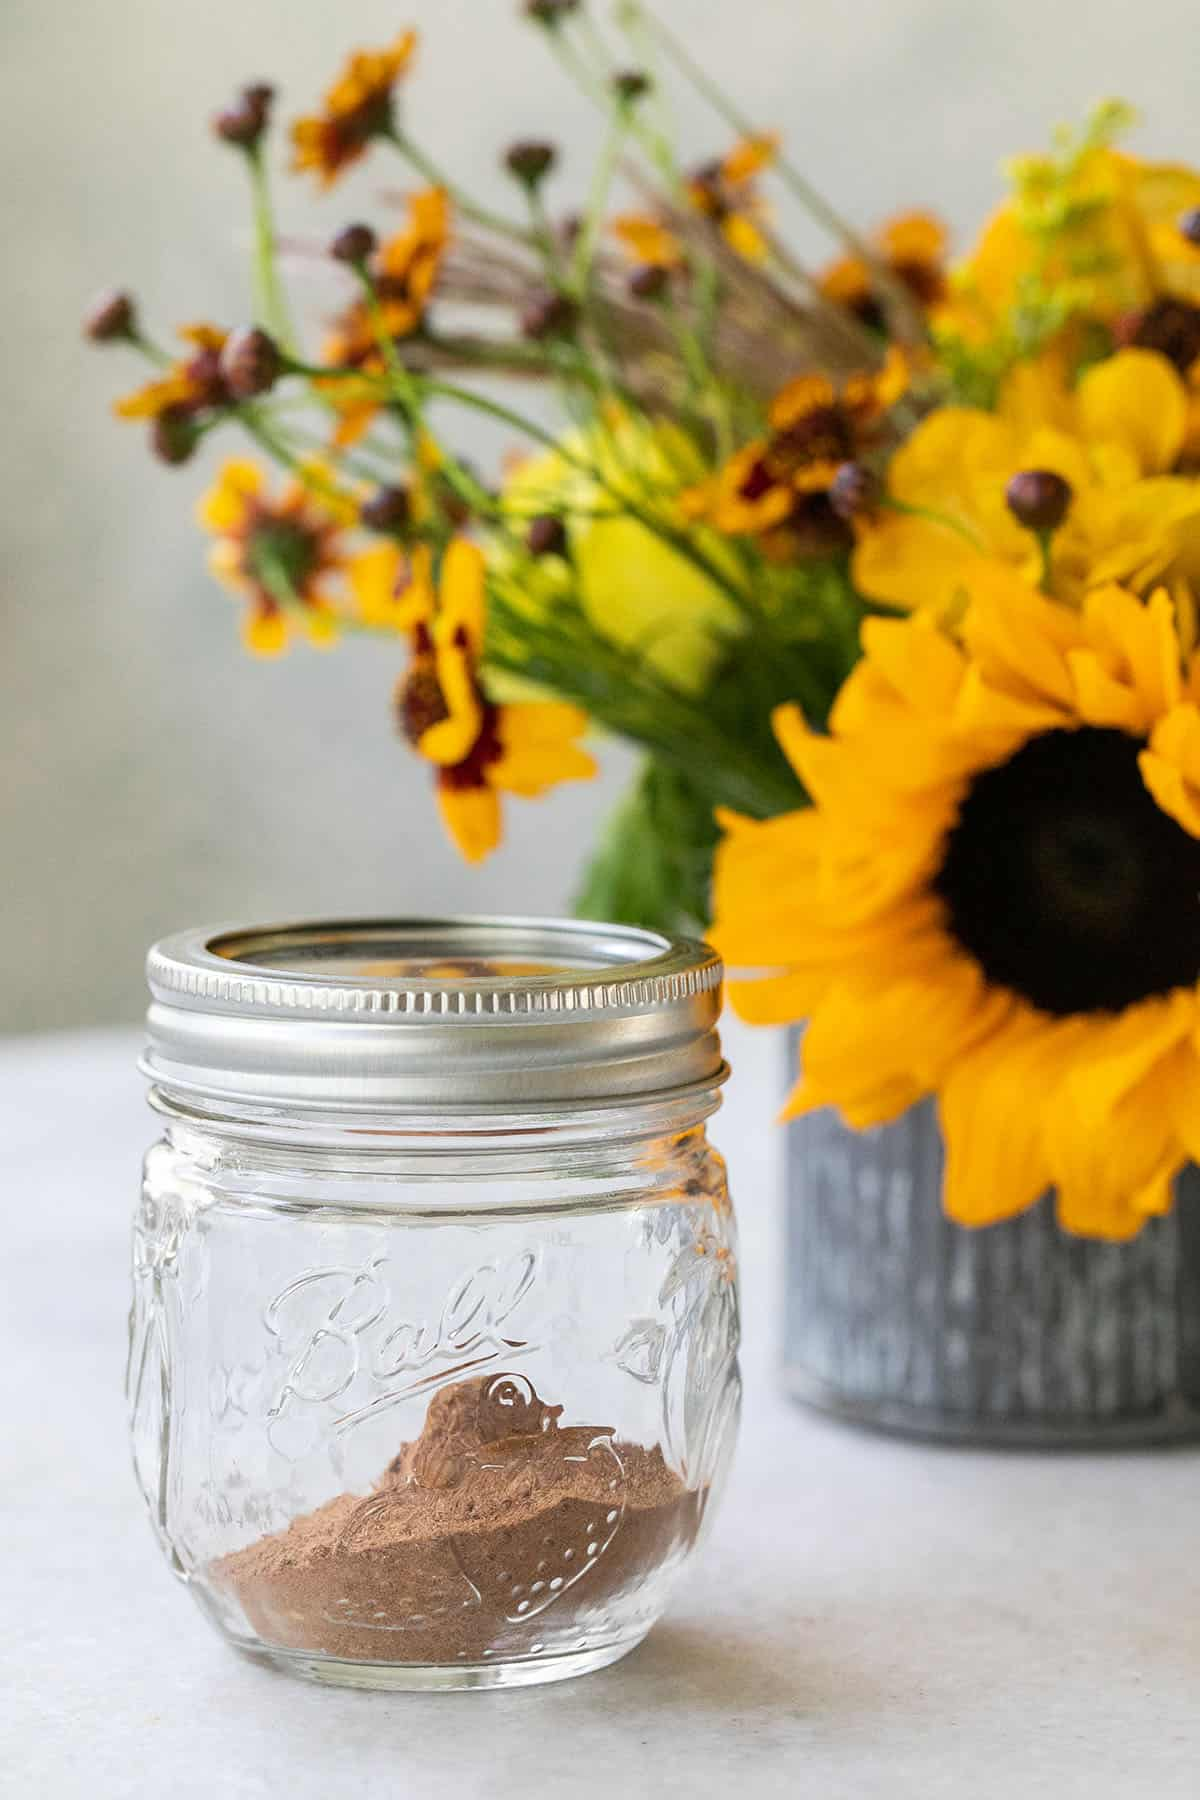 homemade spice in a jar